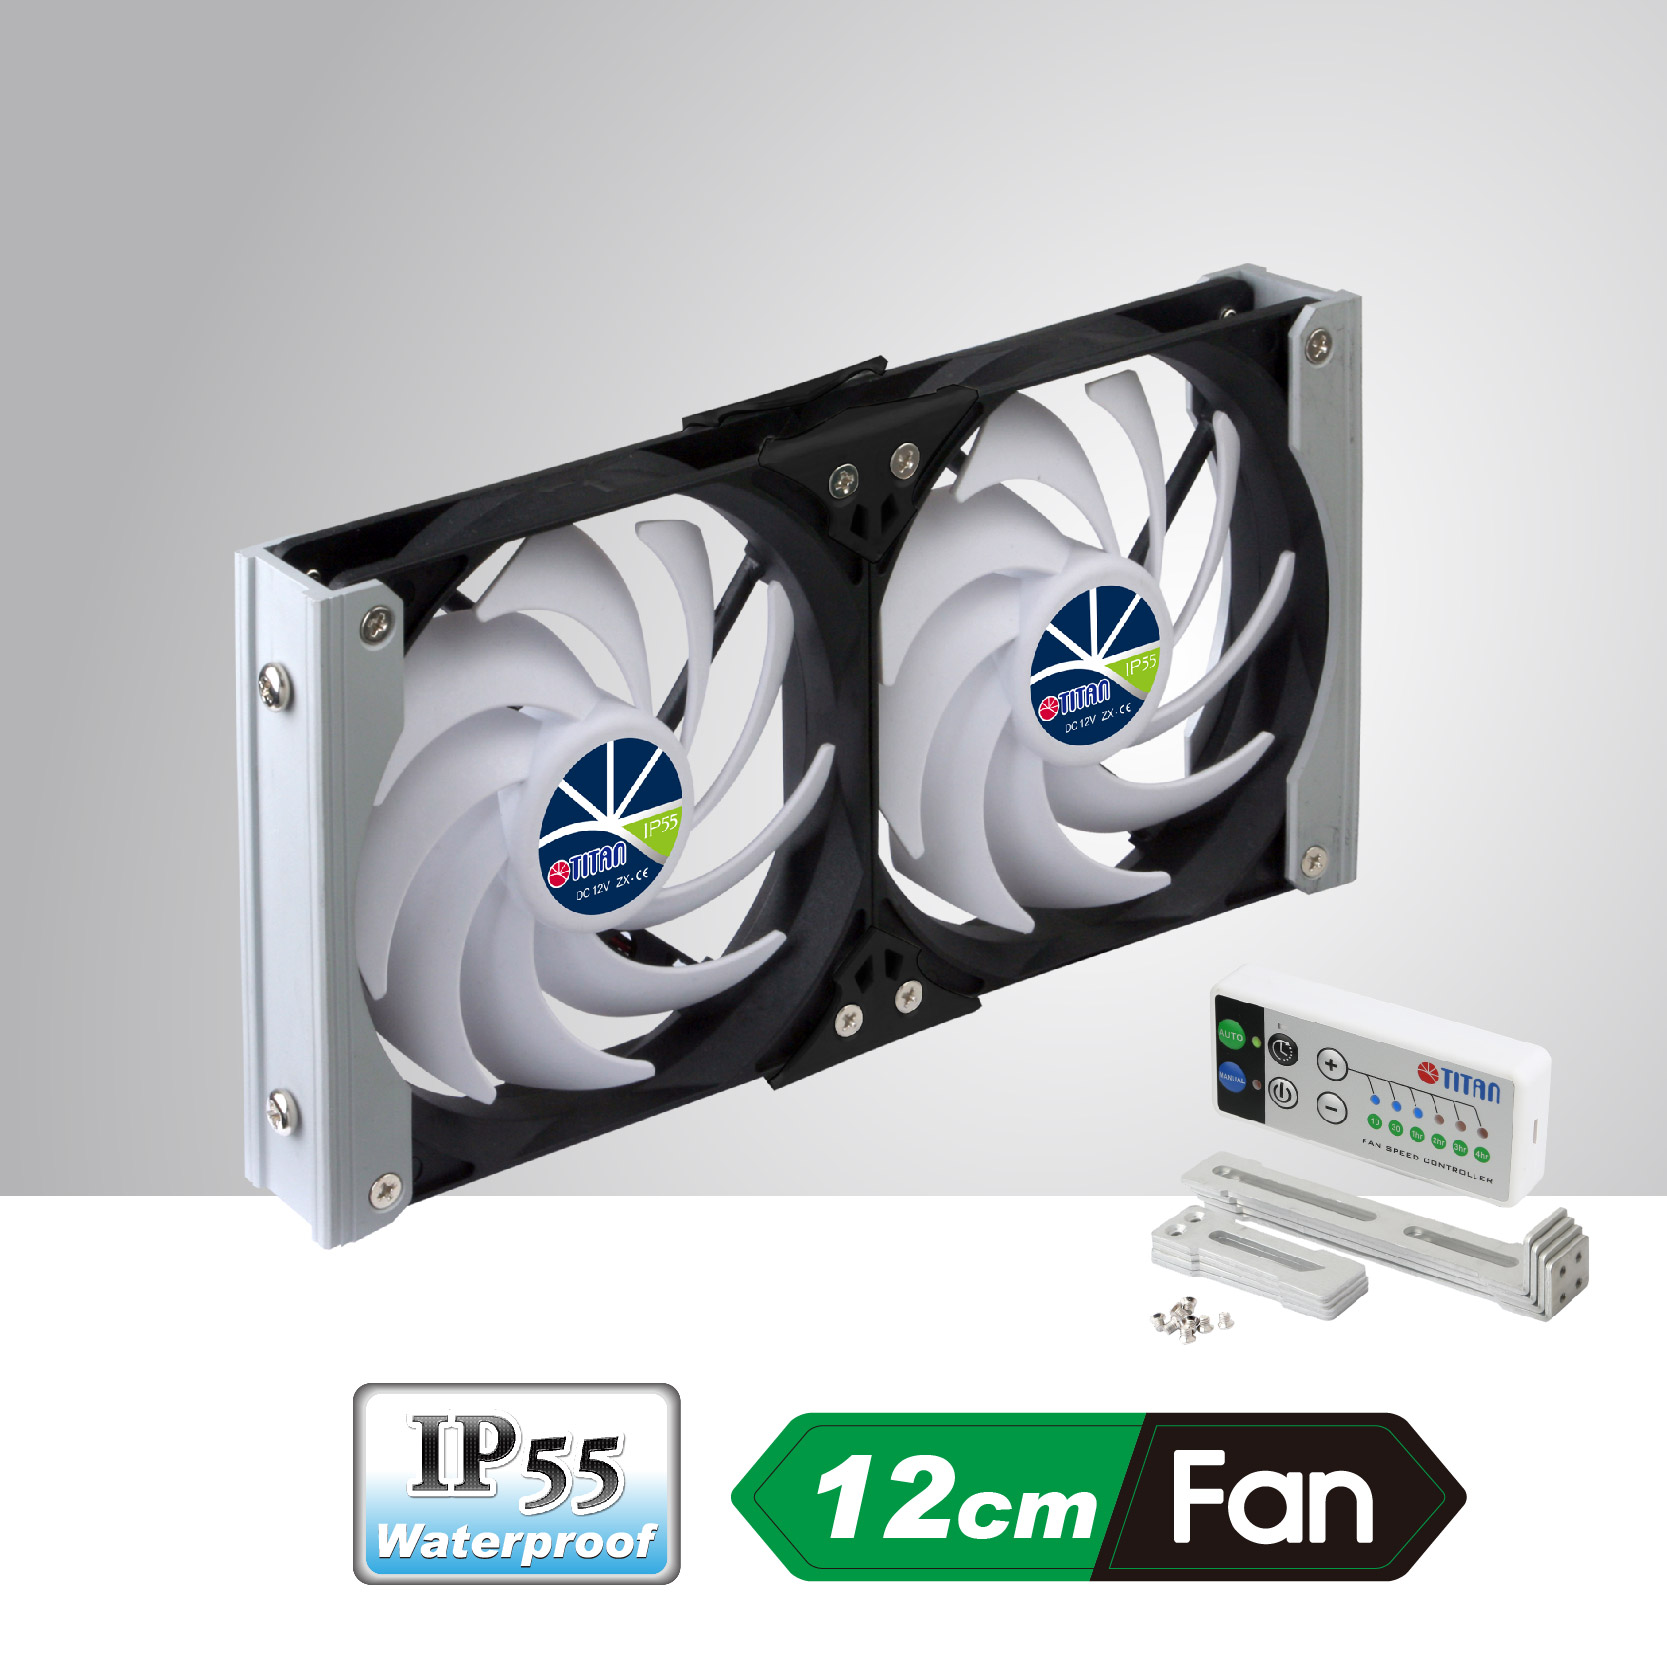 12v Dc Ip55 Waterproof Double Mount Ventilation Cooling Fan With Auto Cool Car Rack Can Be Applied To Refrigerator Vent In Motorhome Camper Van Caravan Travel Trailer Or Audio Vedio Cabinet